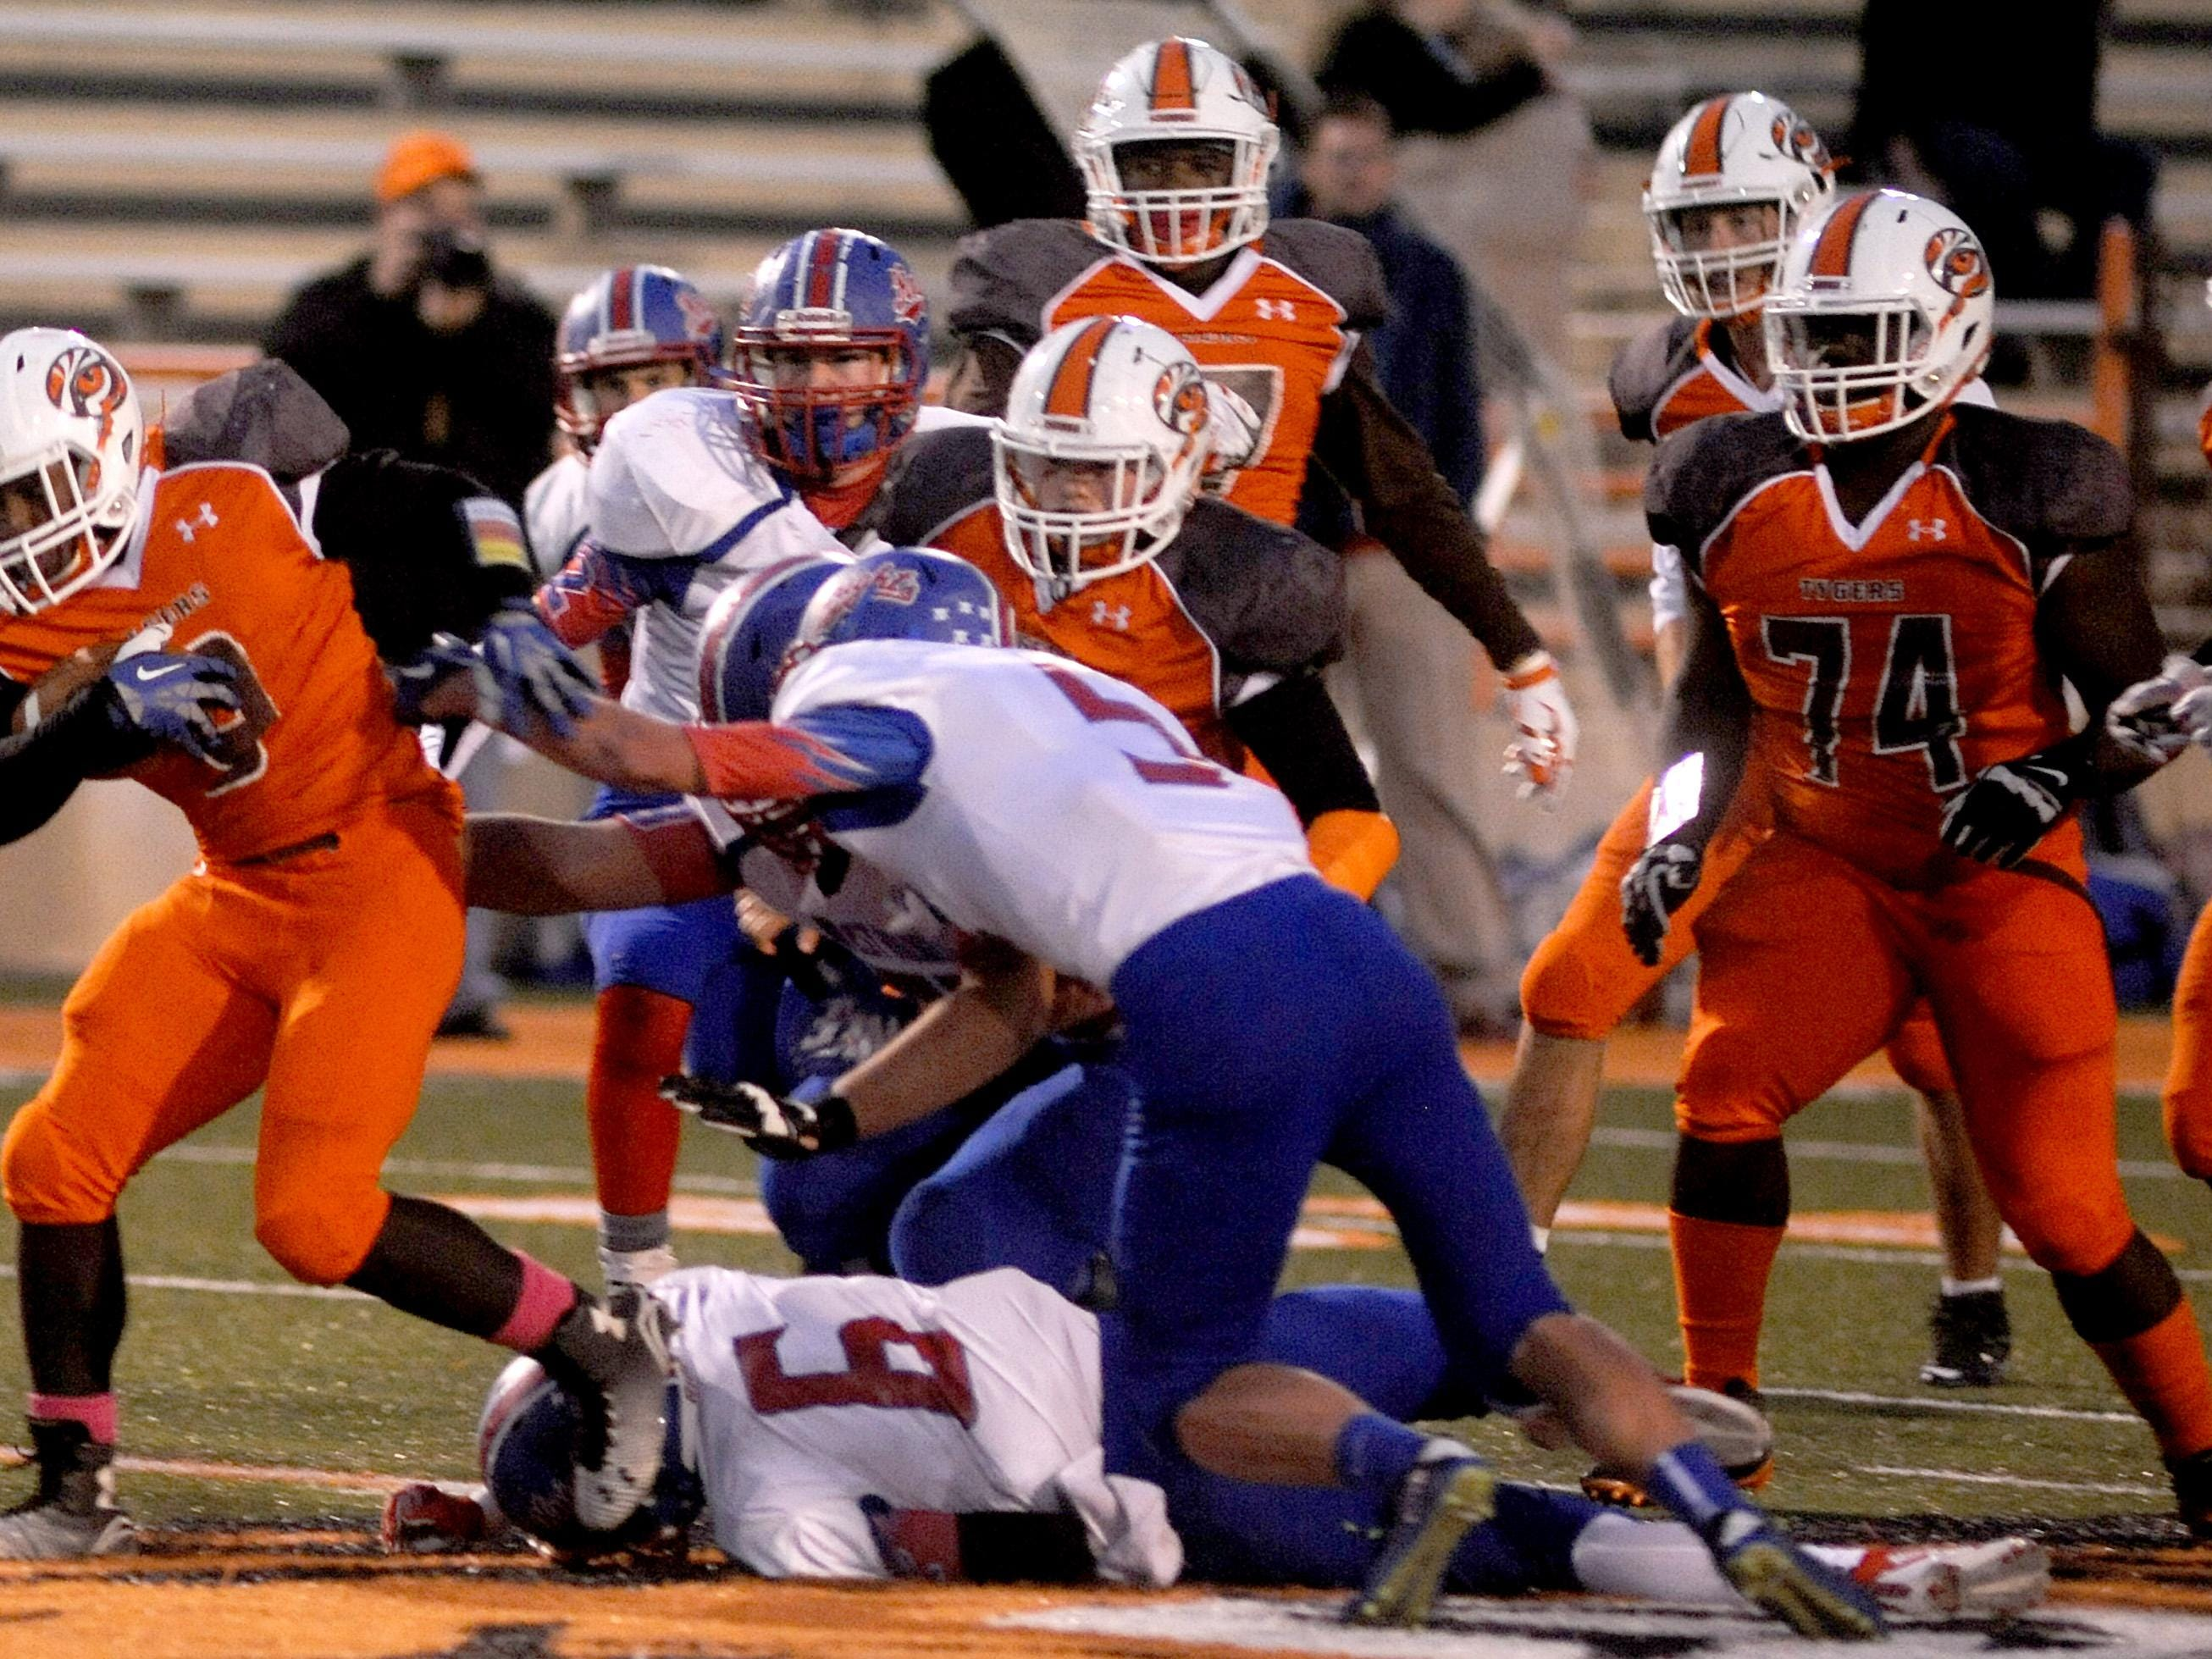 Mansfield Senior's Brian Benson steps on the helmet of Trenton Bridenthal of West Holmes as Benson breaks free for a long touchdown run Friday night at Arlin Field. The Tygers have a shot of climbing into first place in the Ohio Cardinal Conference when they travel to league-leading Wooster Friday.